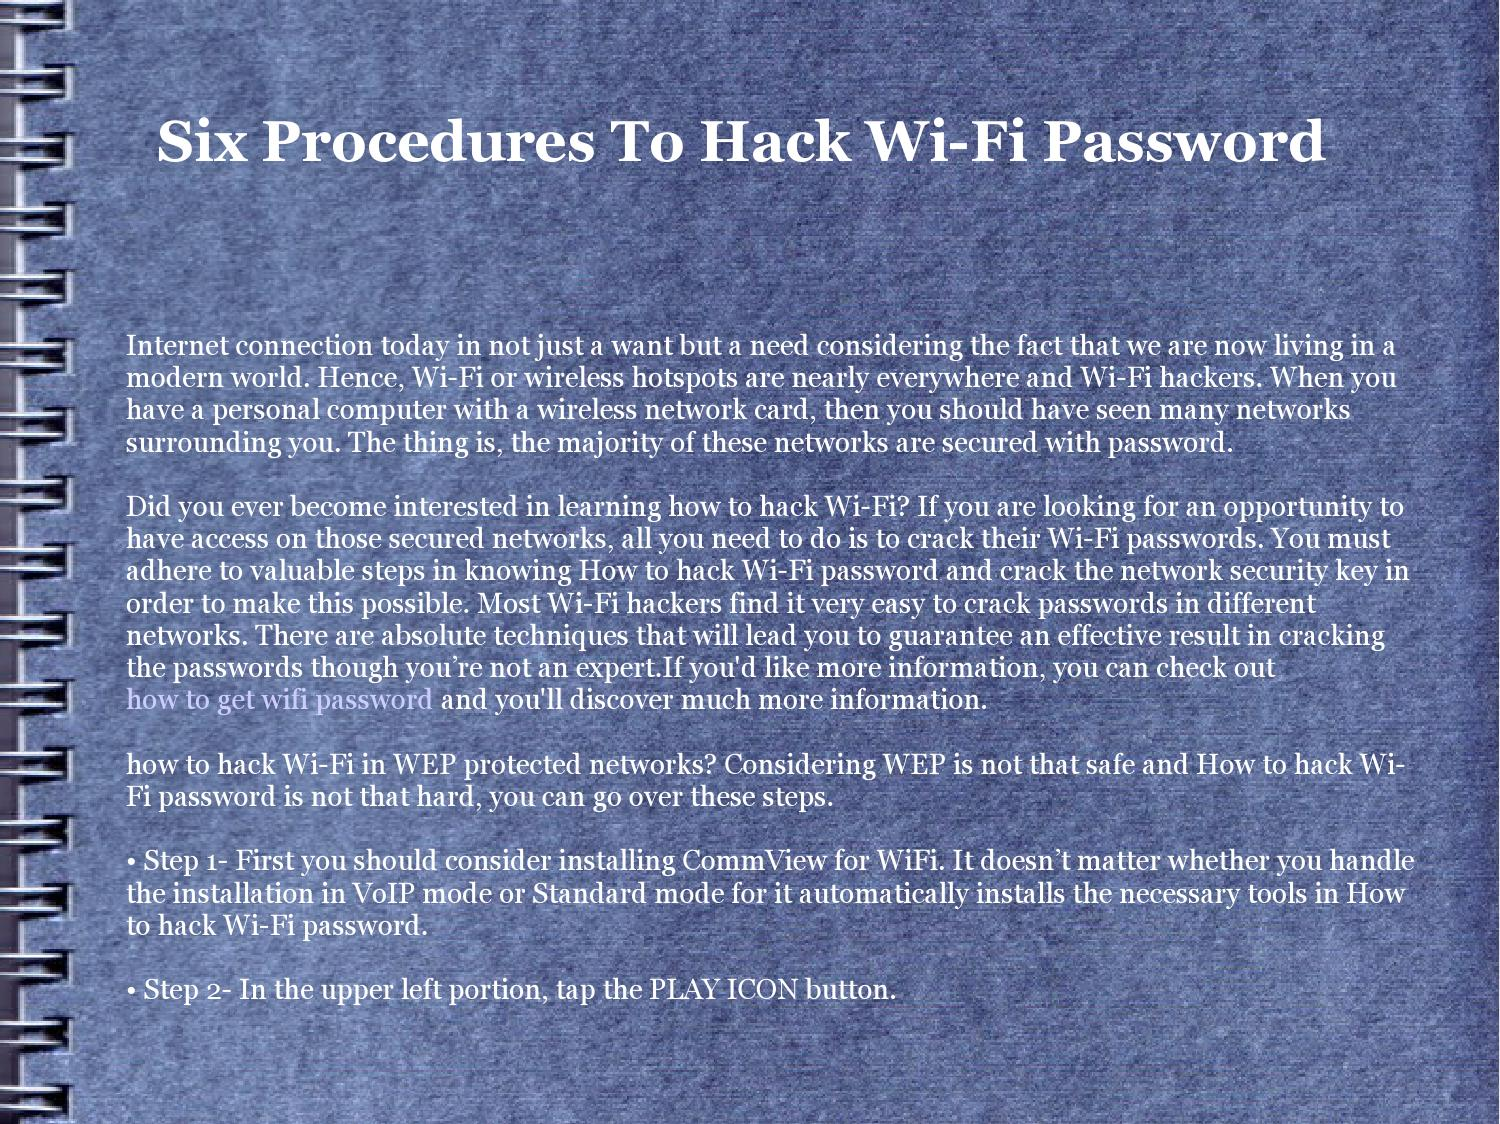 How to hack wifi password by itjyvyhjpv17 - issuu